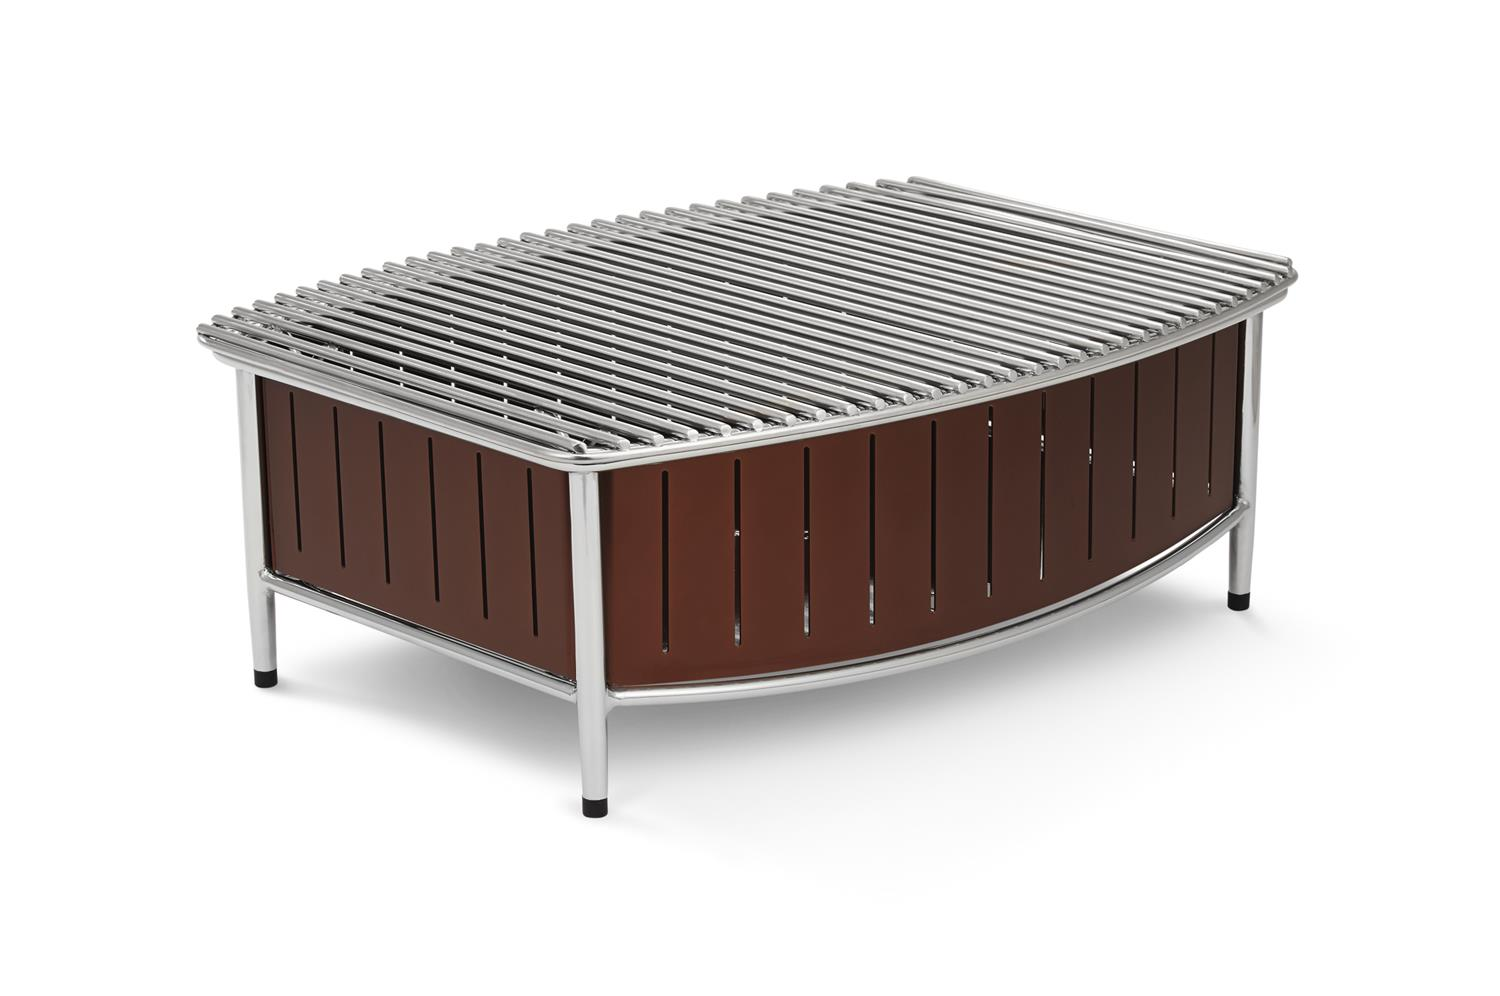 Vollrath 4667570 Large Buffet Station with Wire Grill, Brown